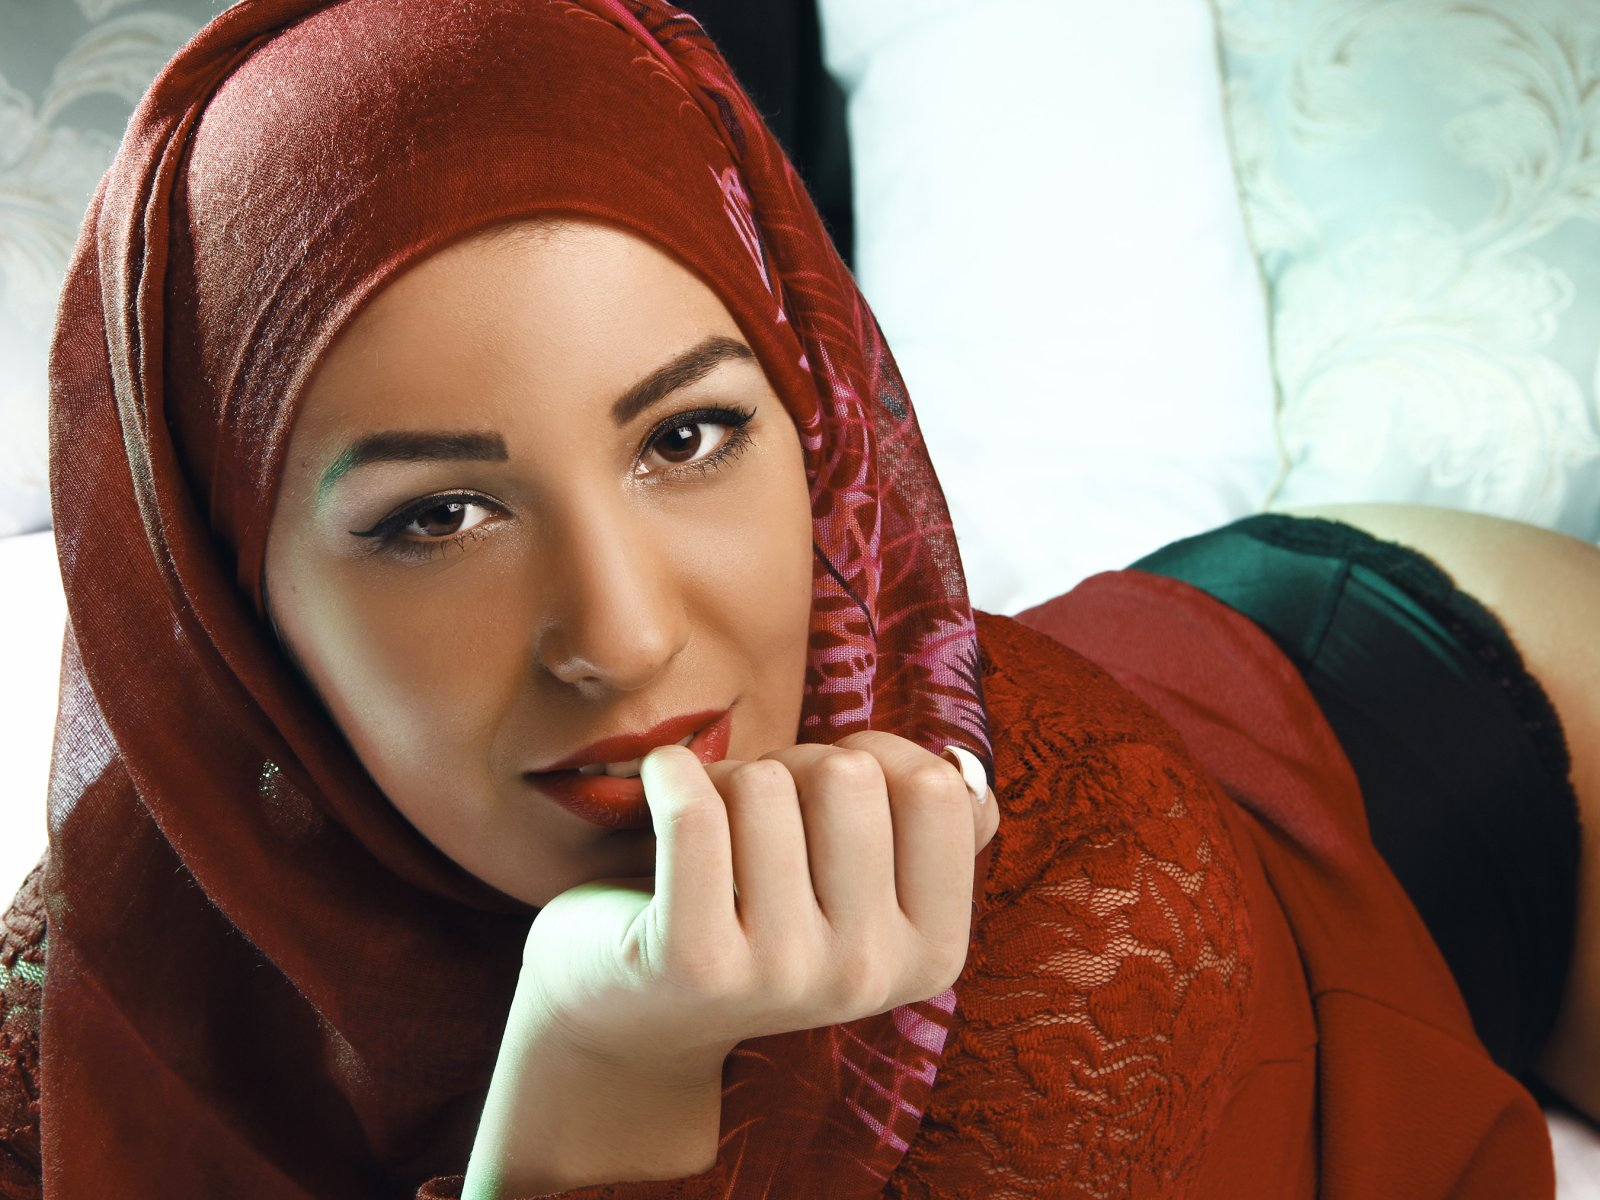 Pussy girl muslim picture — photo 1